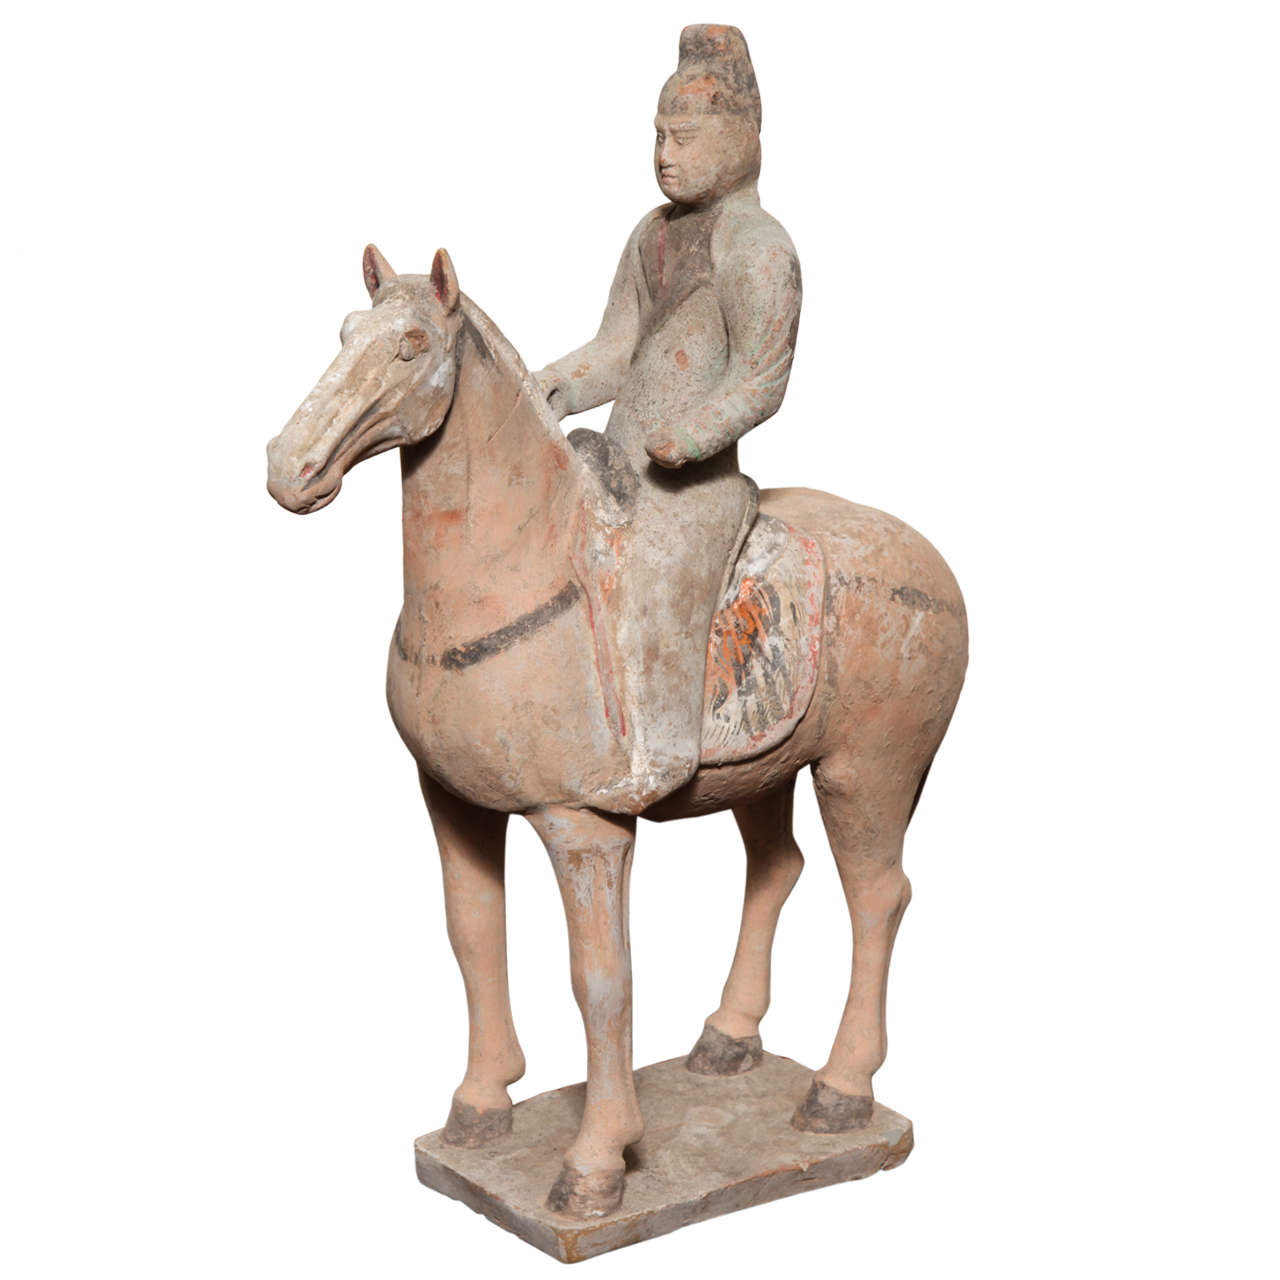 7th 10th Century Tang Dynasty Terracotta Statuette Of A Horse With Rider At 1stdibs